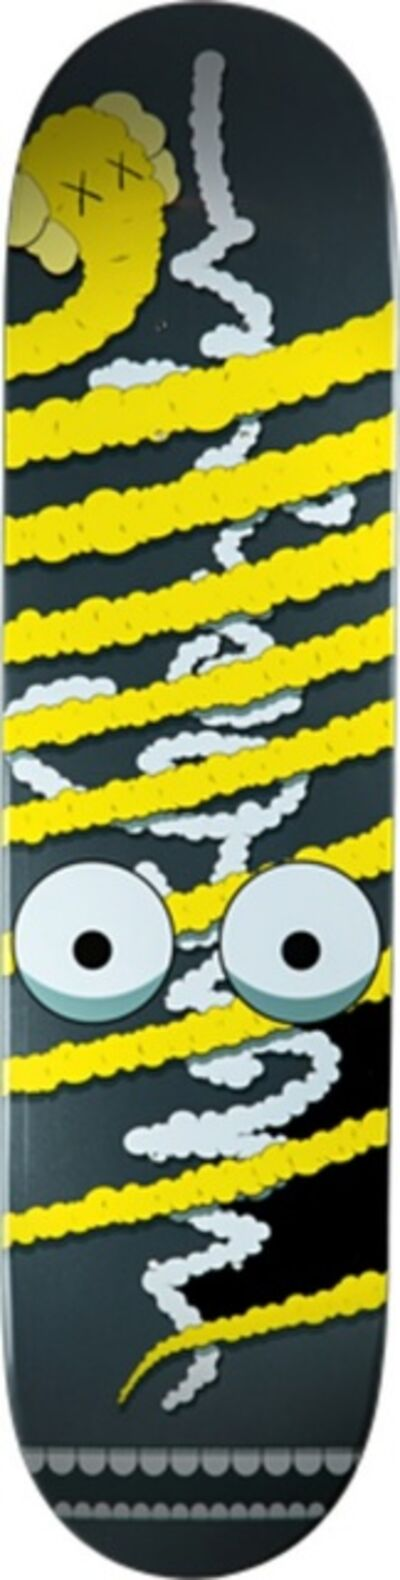 KAWS, 'Yellow Snake (Limited Edition, Numbered) Skate Deck', ca. 2005